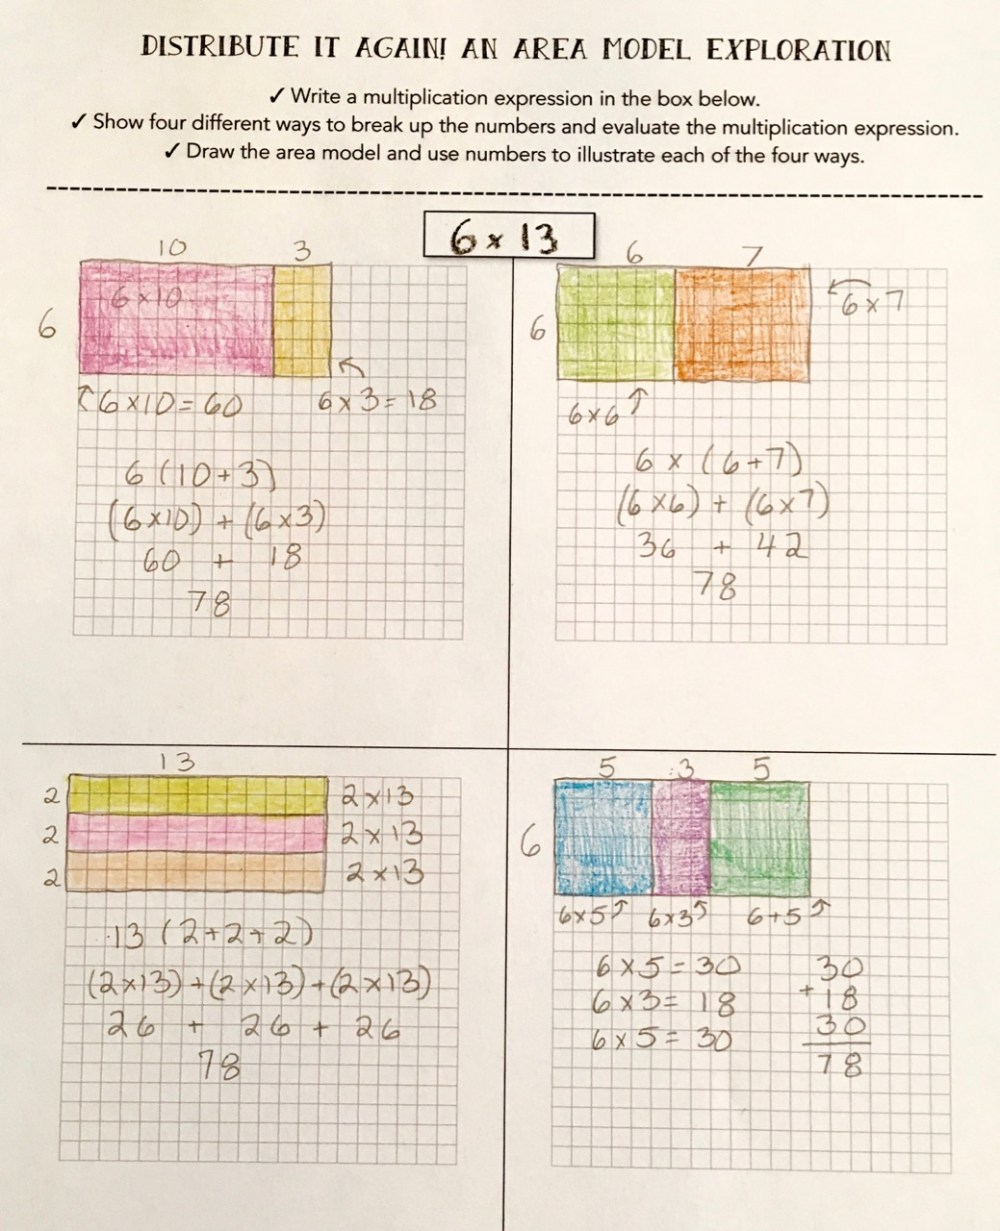 medium resolution of this reinforces the importance of flexibility when thinking about numbers and allows students to personalize their strategies